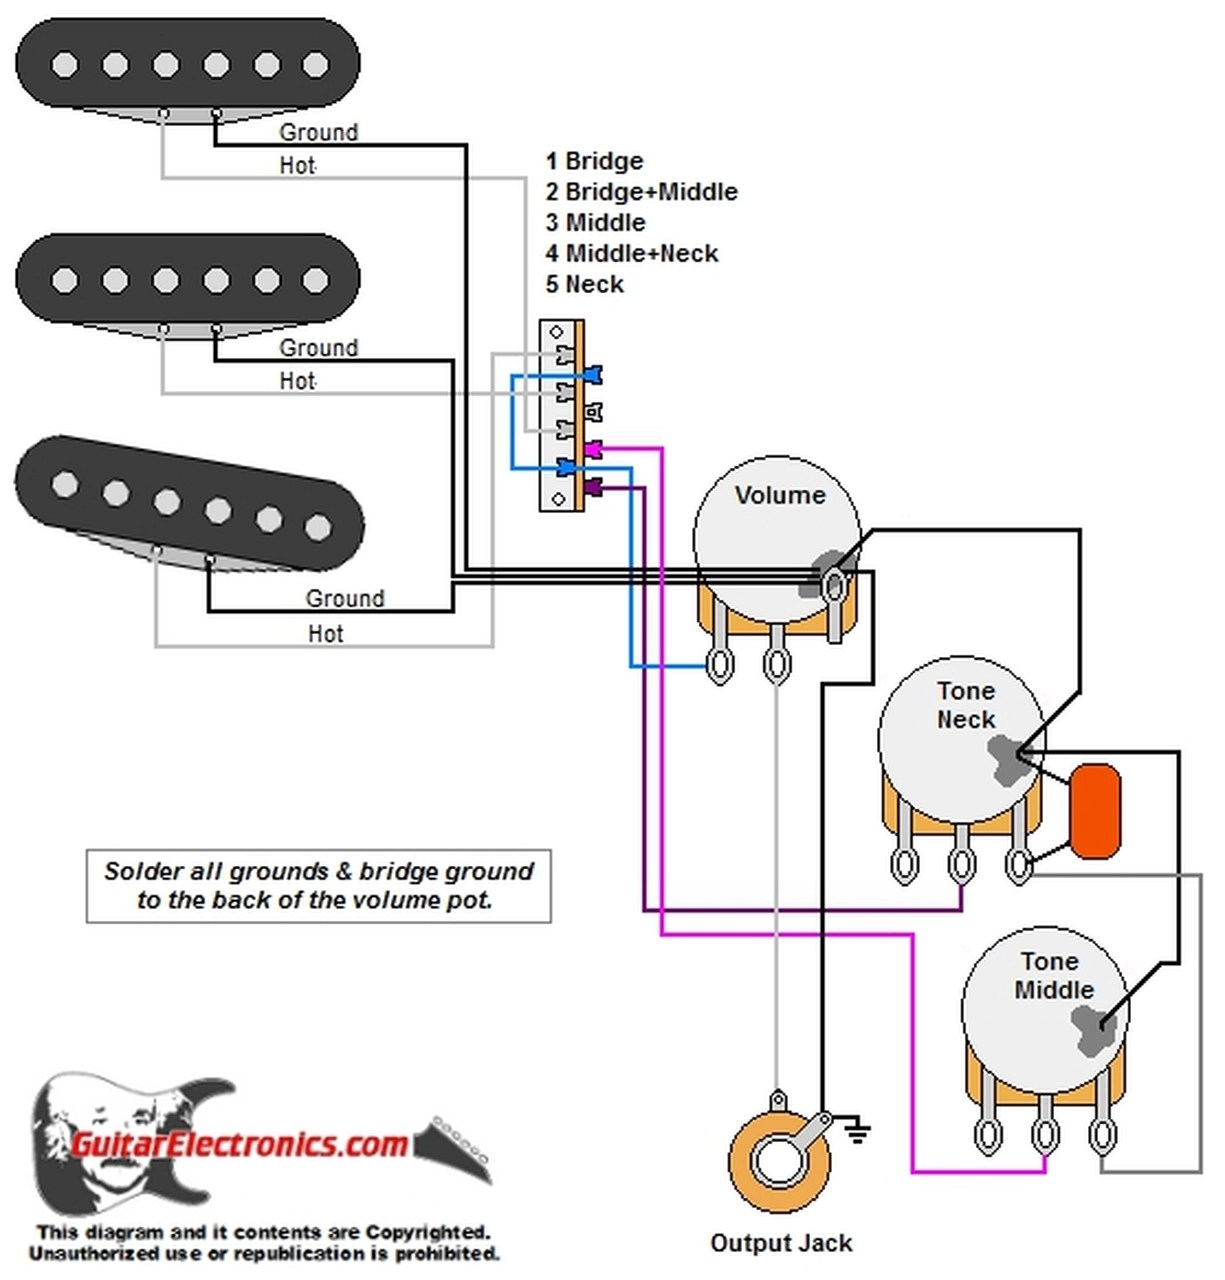 hight resolution of fender stratocaster input jack wiring diagram